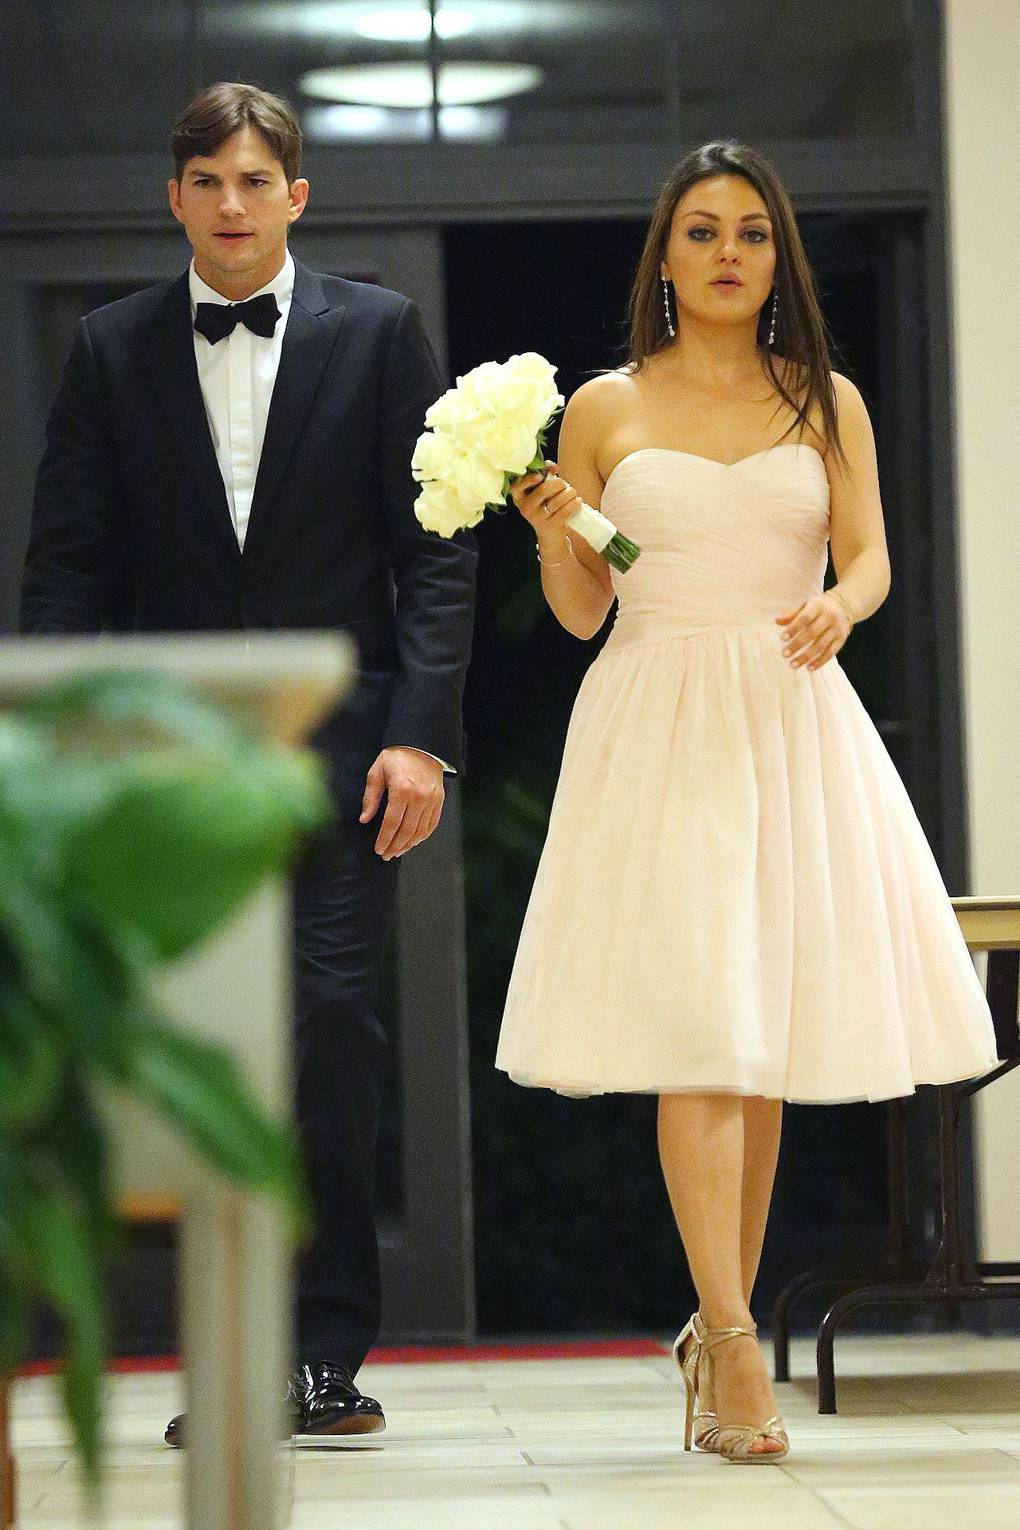 Mila Kunis Ashton Kutcher Wedding Day Dress News Glamour Uk